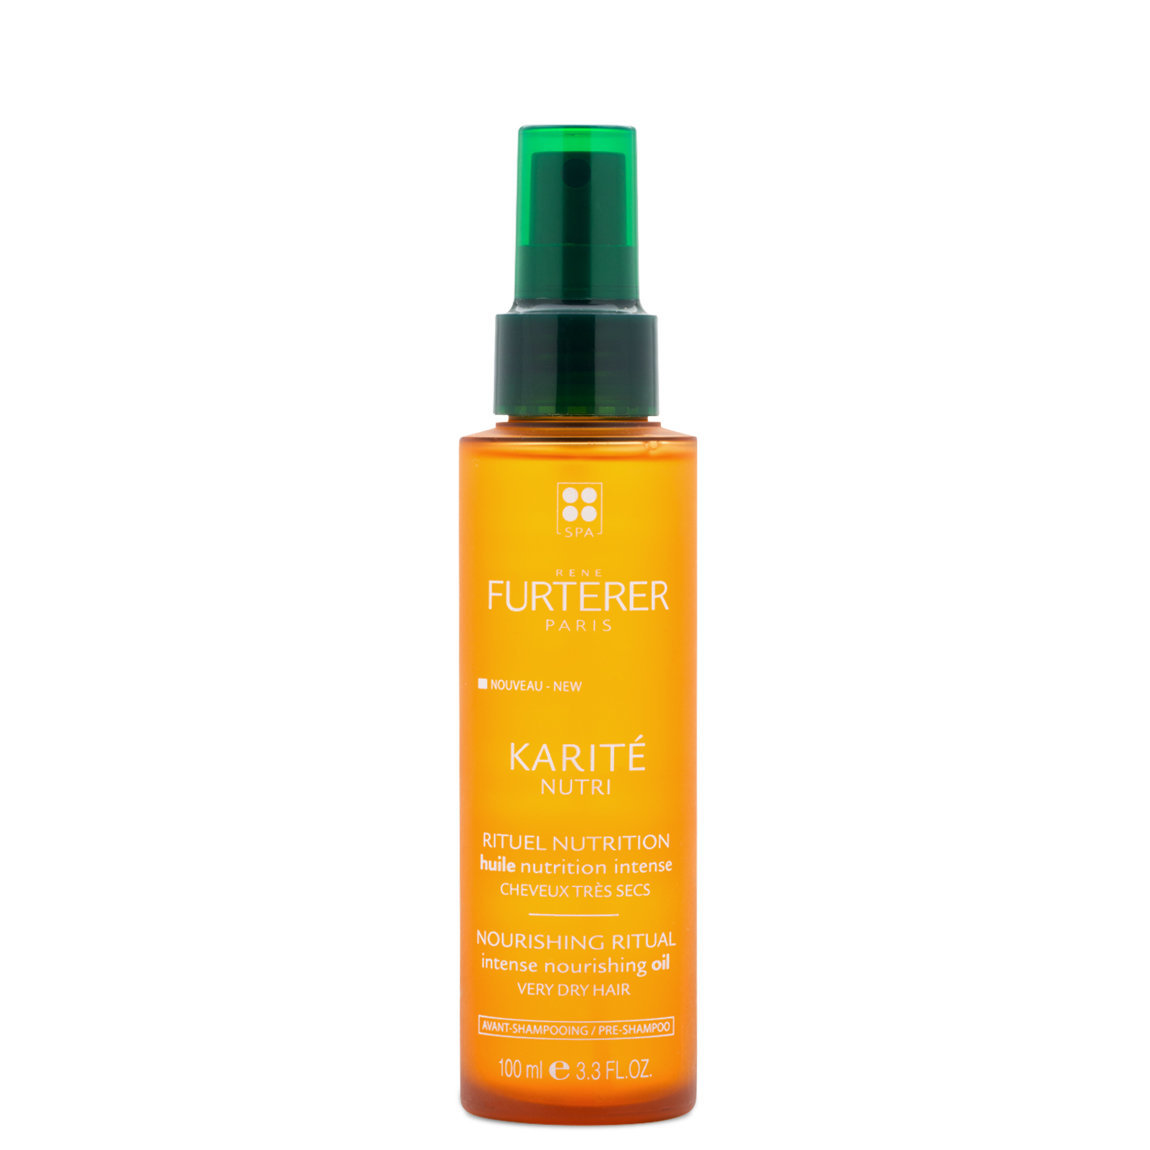 Rene Furterer Karite Nutri Intense Nourishing Oil product smear.